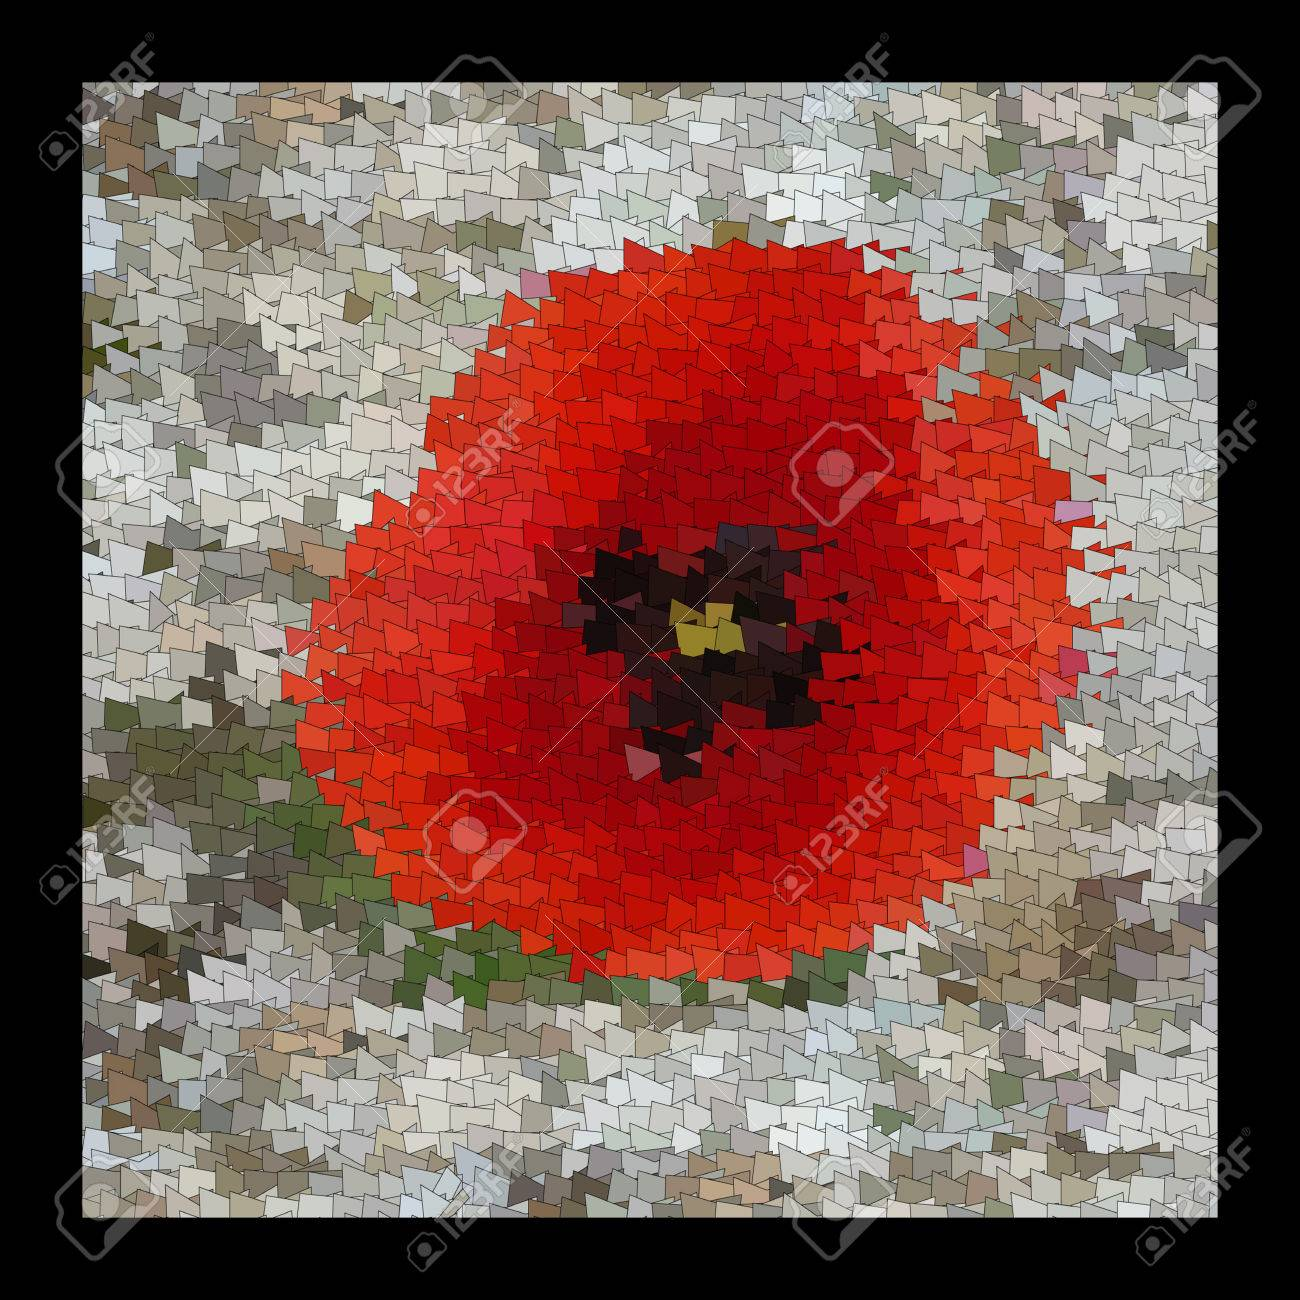 The Flowers Of Red Poppy Closeup On Grey Background Art Quilt And Mozaic Color